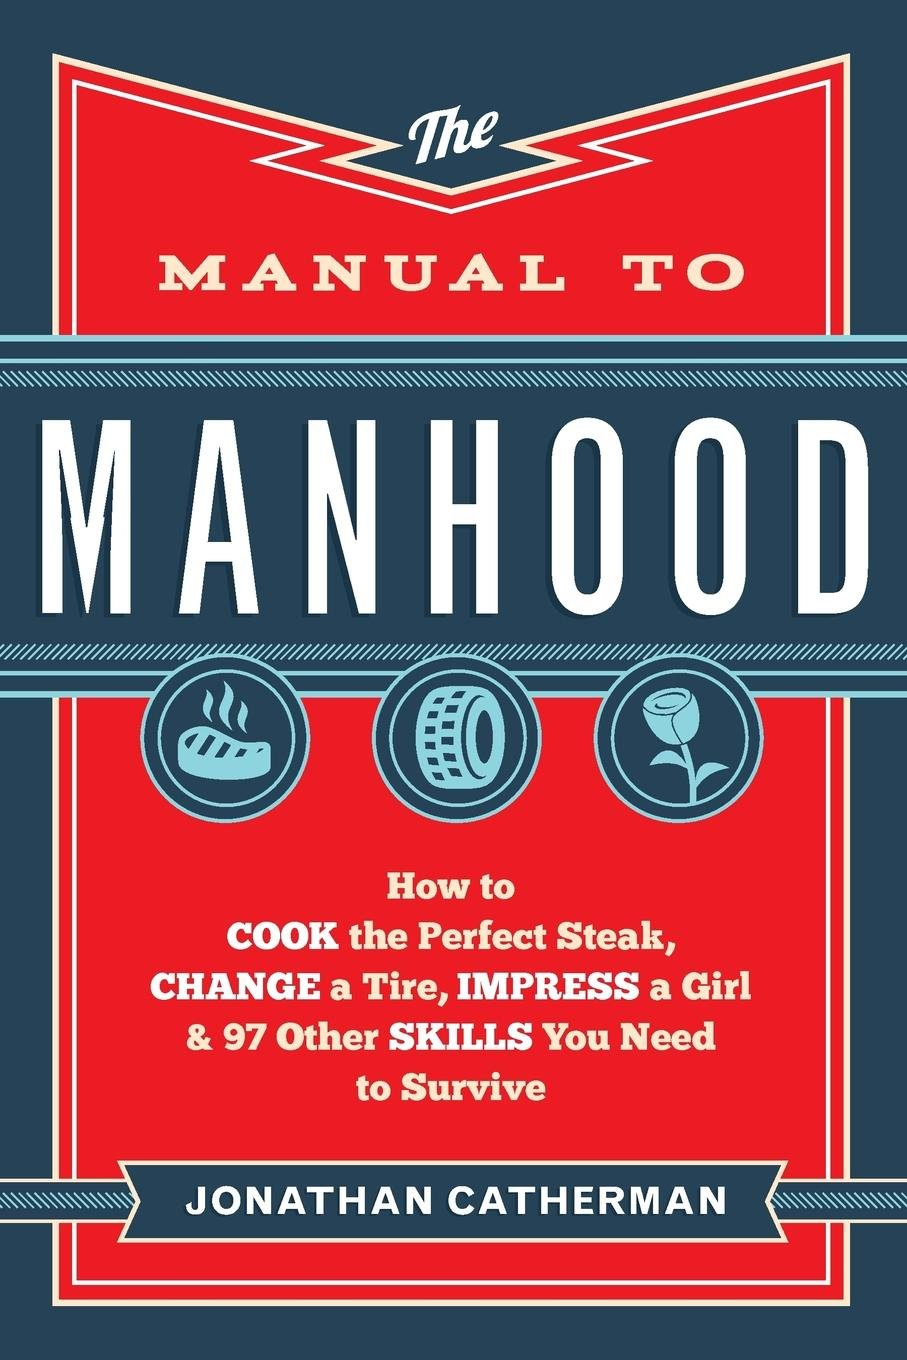 Manual To Manhood  How To Cook The Perfect Steak Change A Tire Impress A Girl And 97 Other Skills You Need To Survive